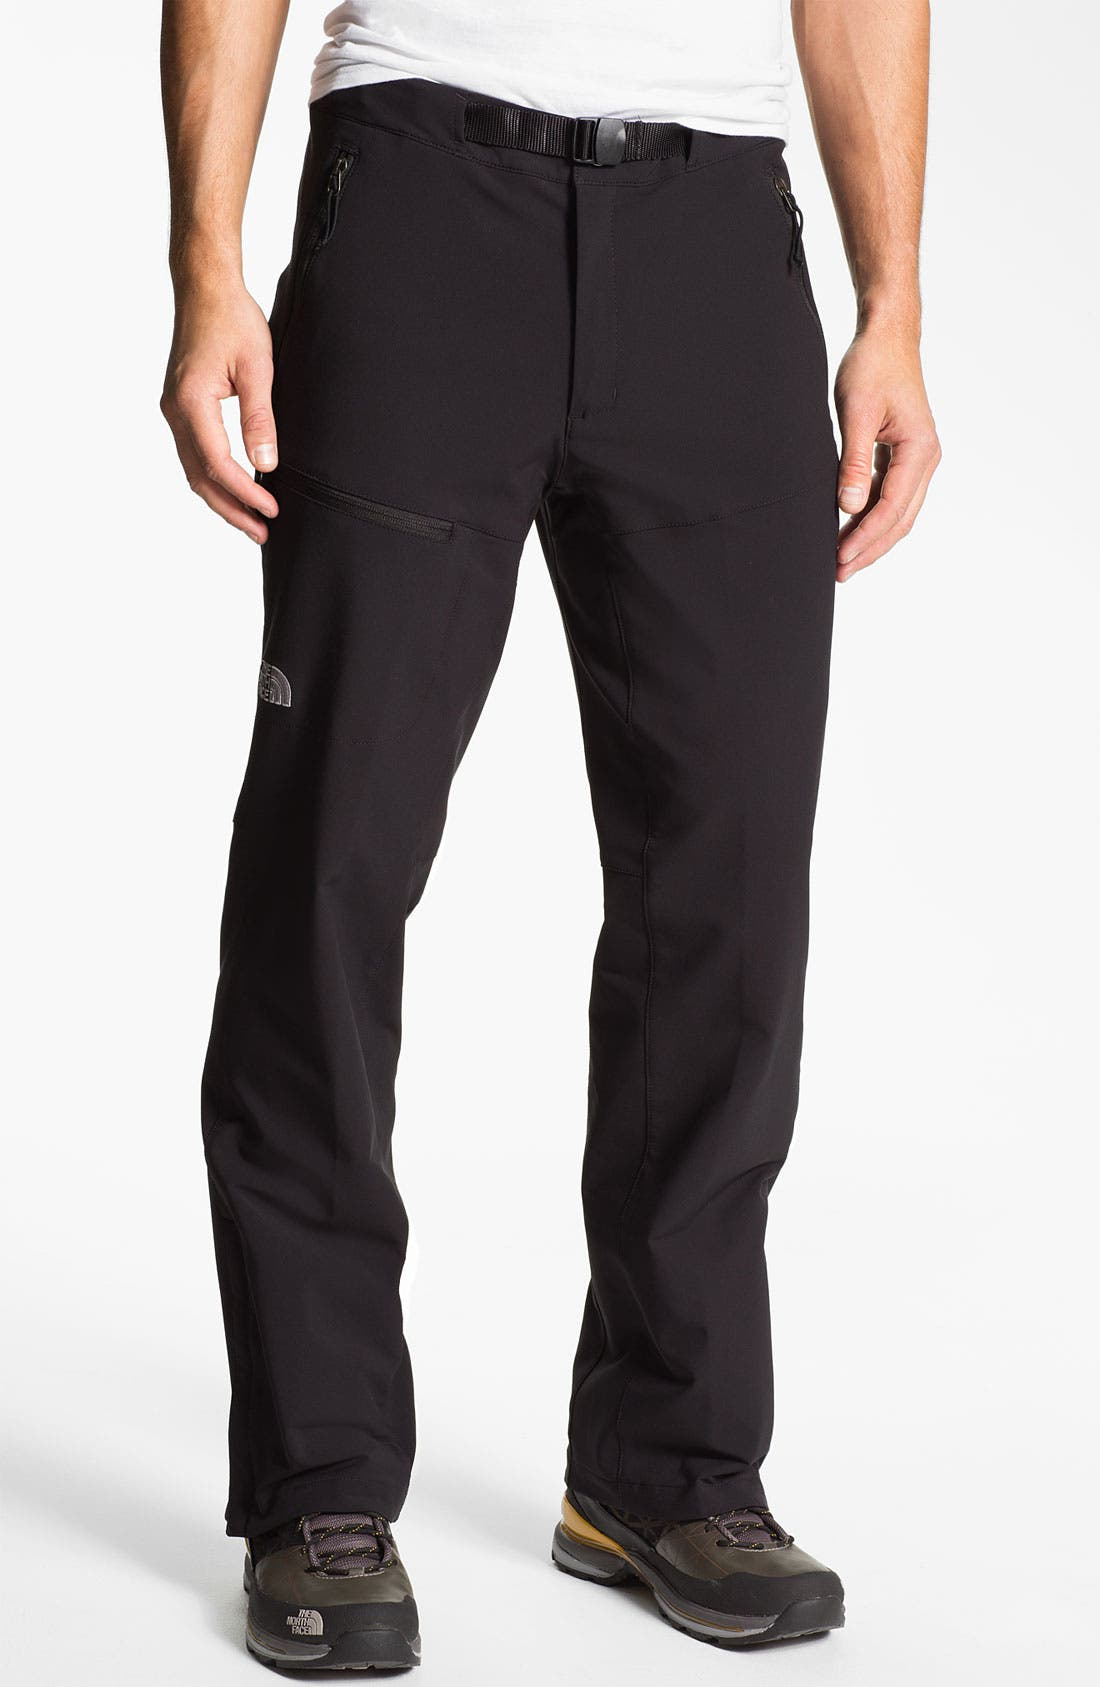 Alternate Image 1 Selected - The North Face 'Cotopaxi' Pants